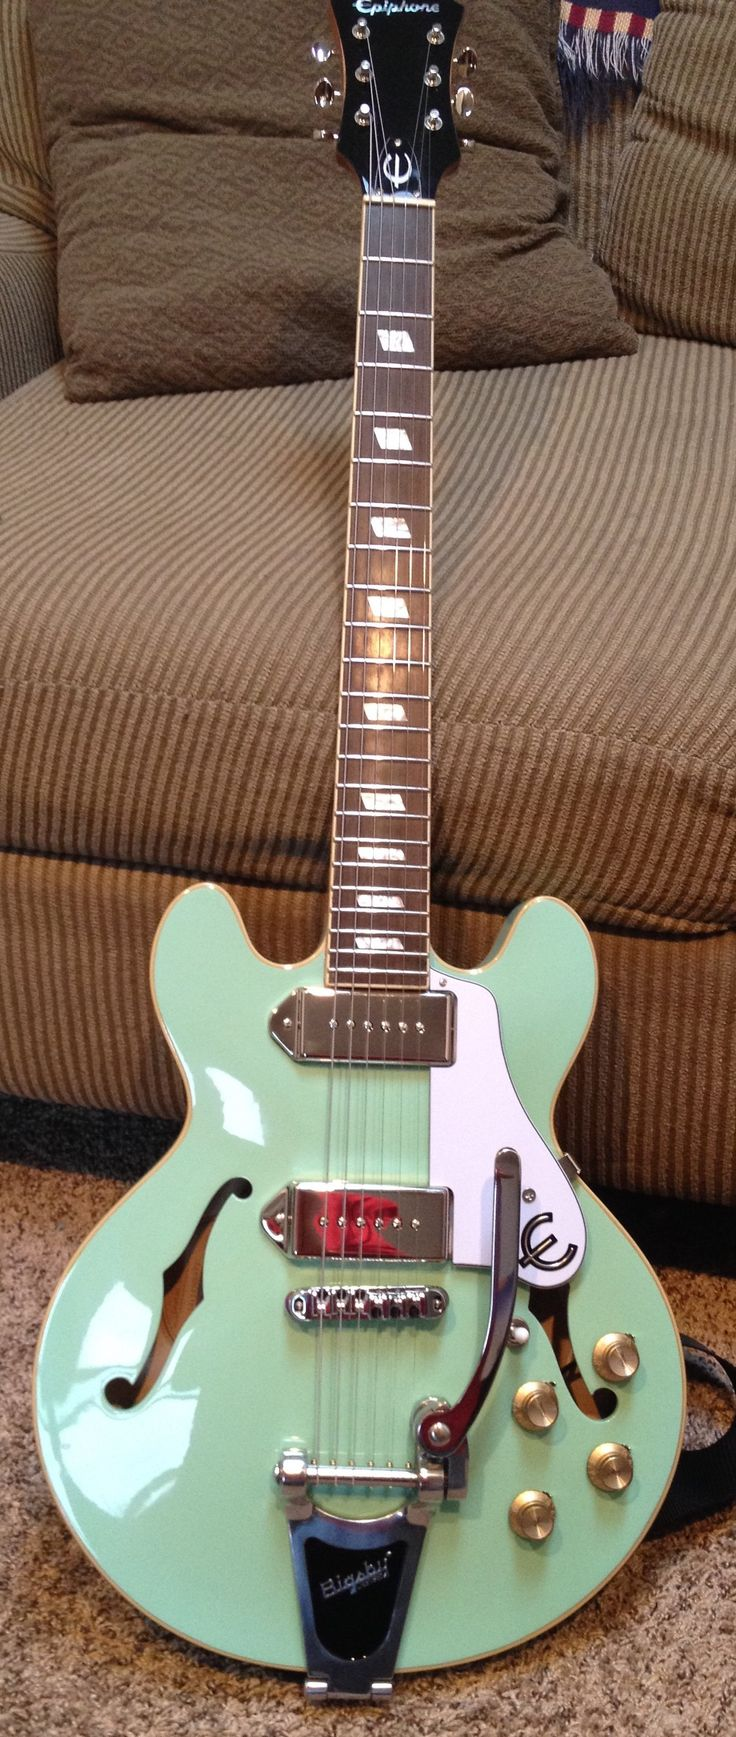 Sea foam green Epiphone Casino Coupe.